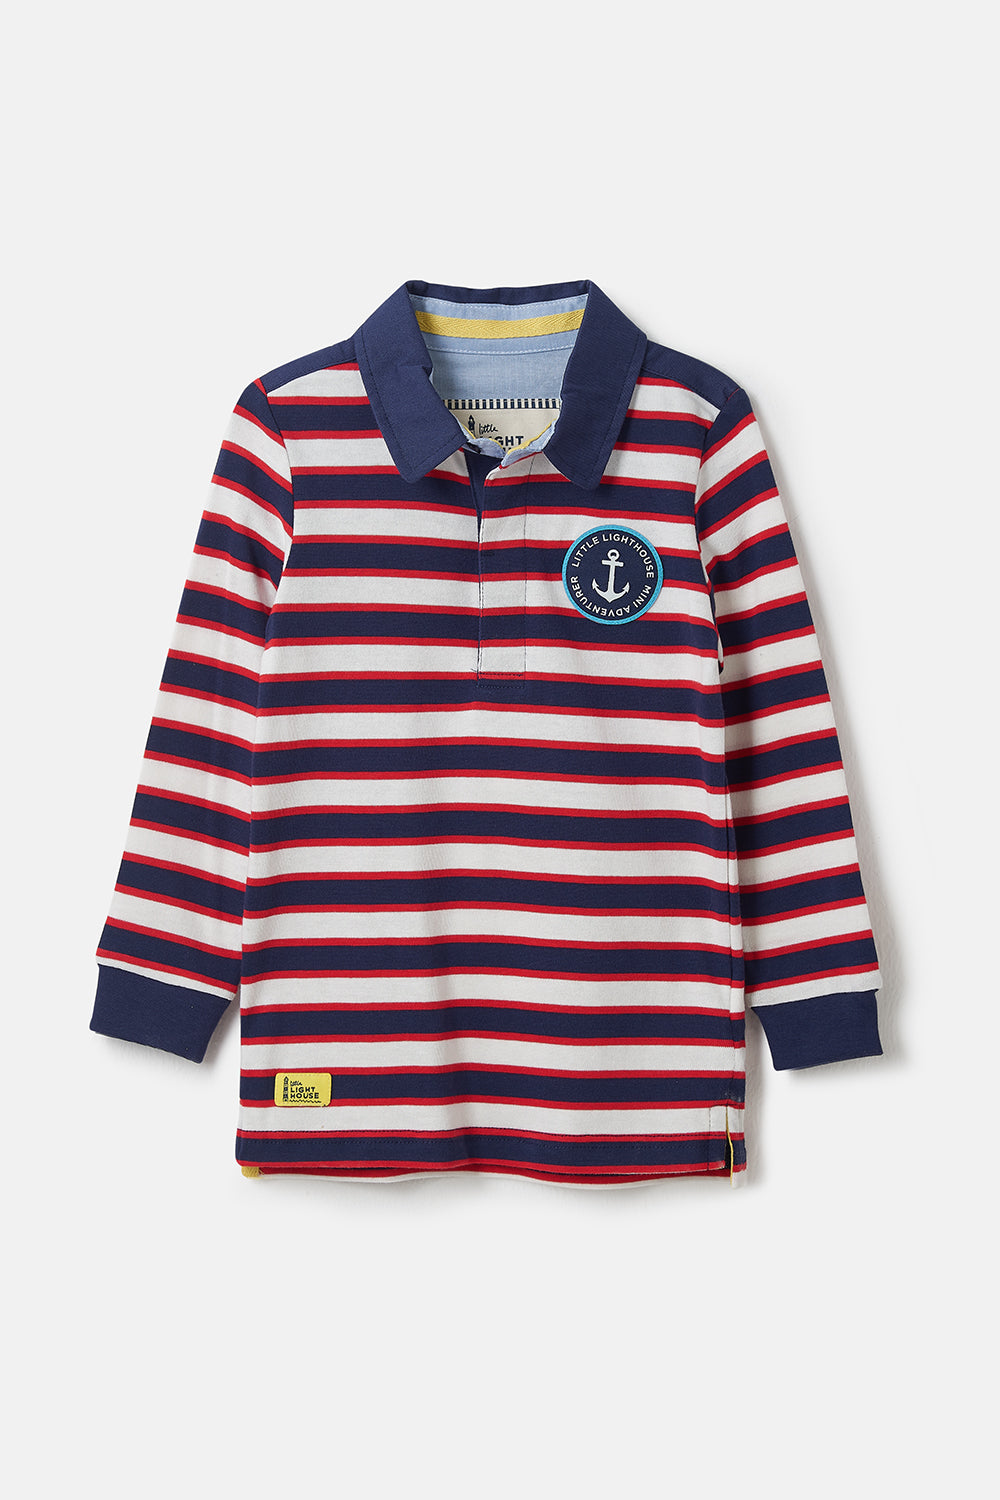 Lighthouse Alfie - Boys Striped Rugby Shirt - Eclipse Stripe